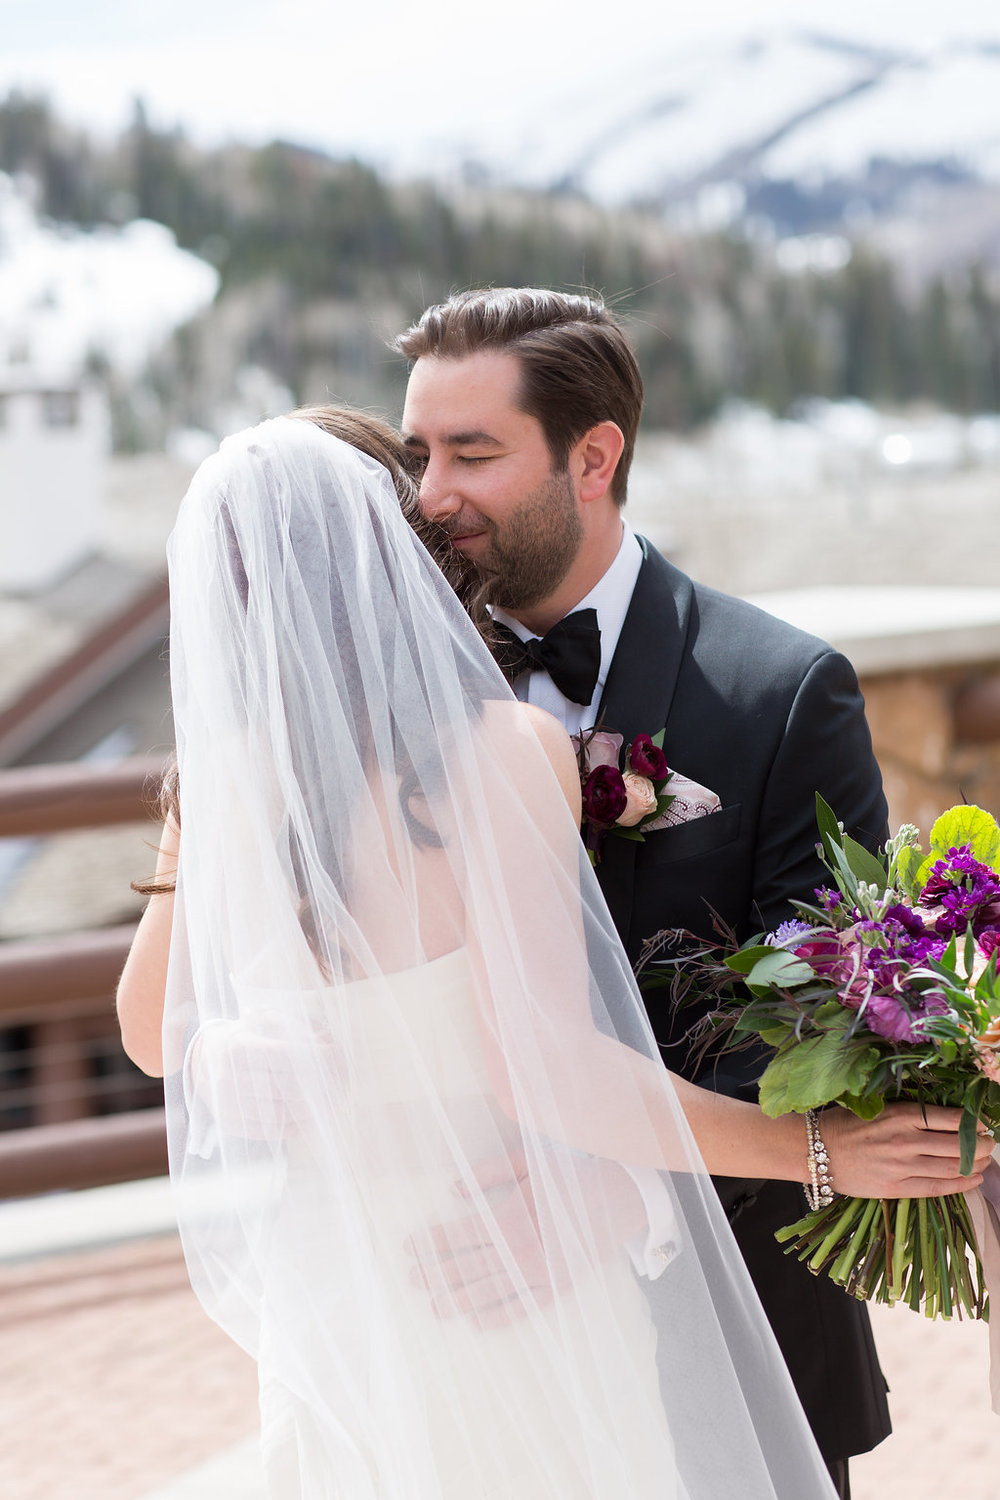 Stein Eriksen Lodge Wedding in Park City Utah | Michelle Leo Events | Utah Wedding Planning and Event Design | Patricia Lyons Photography